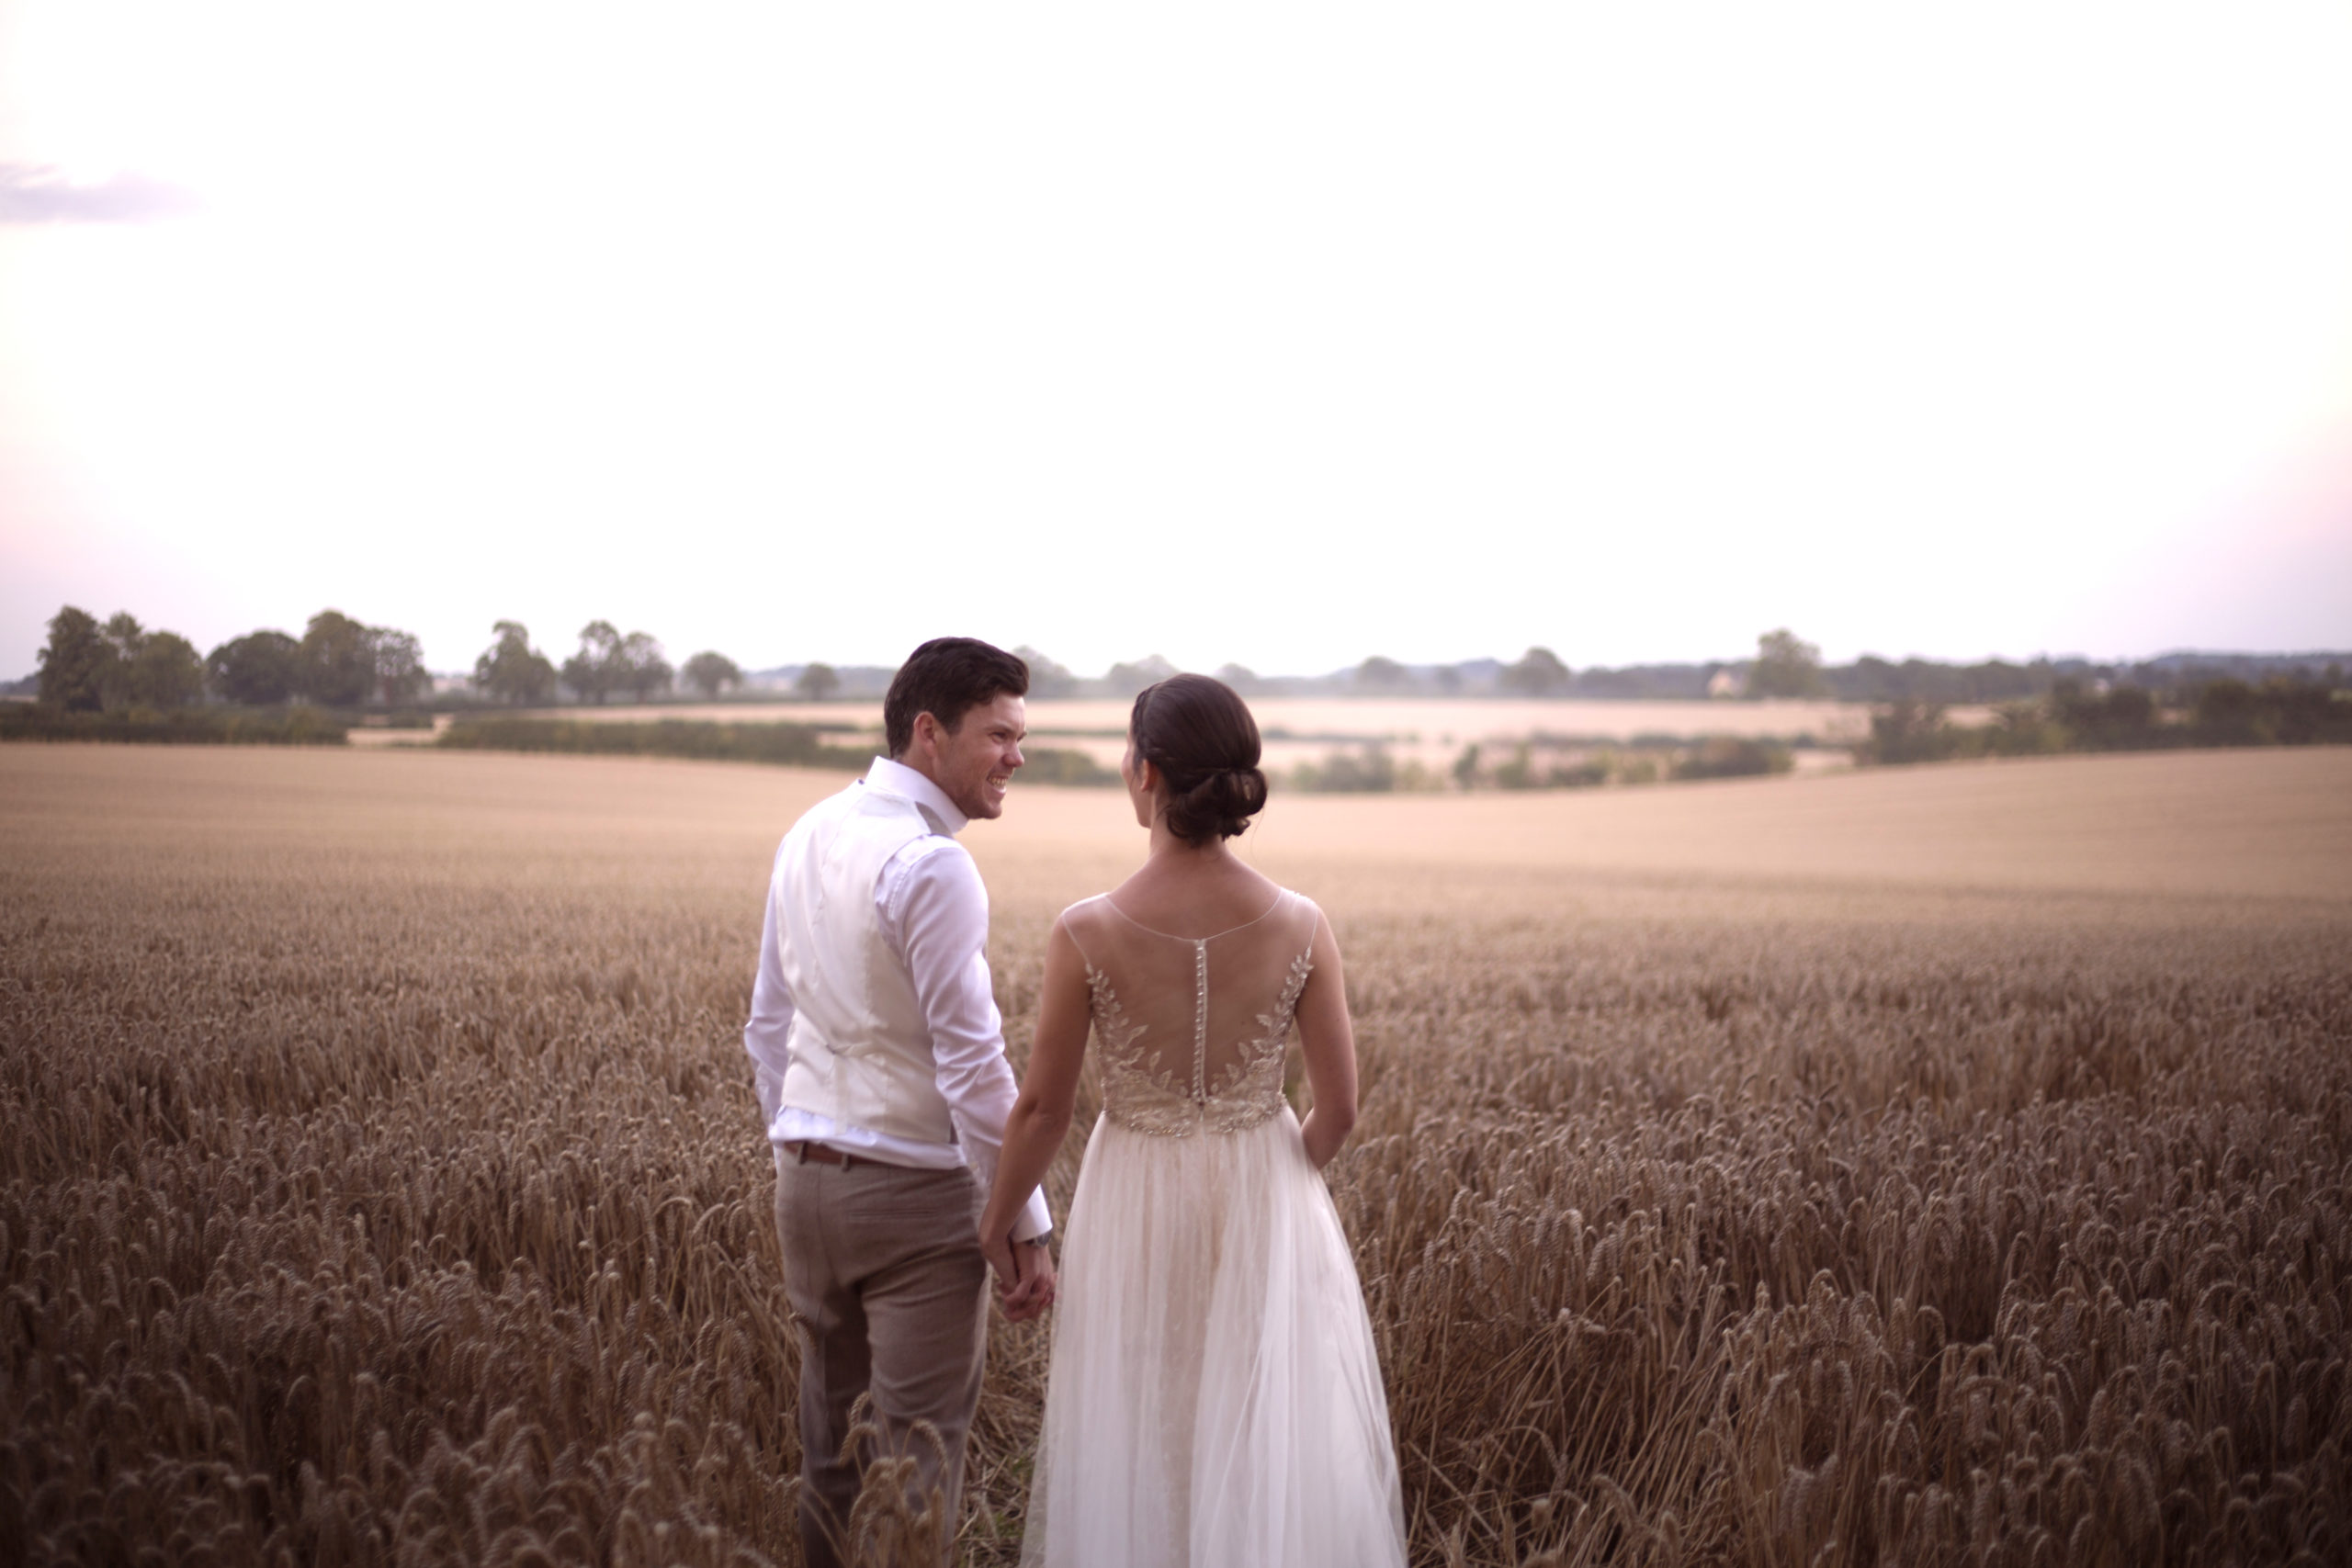 Bride and groom walking in cornfield at Cripps barn wedding photographer gloucestershire